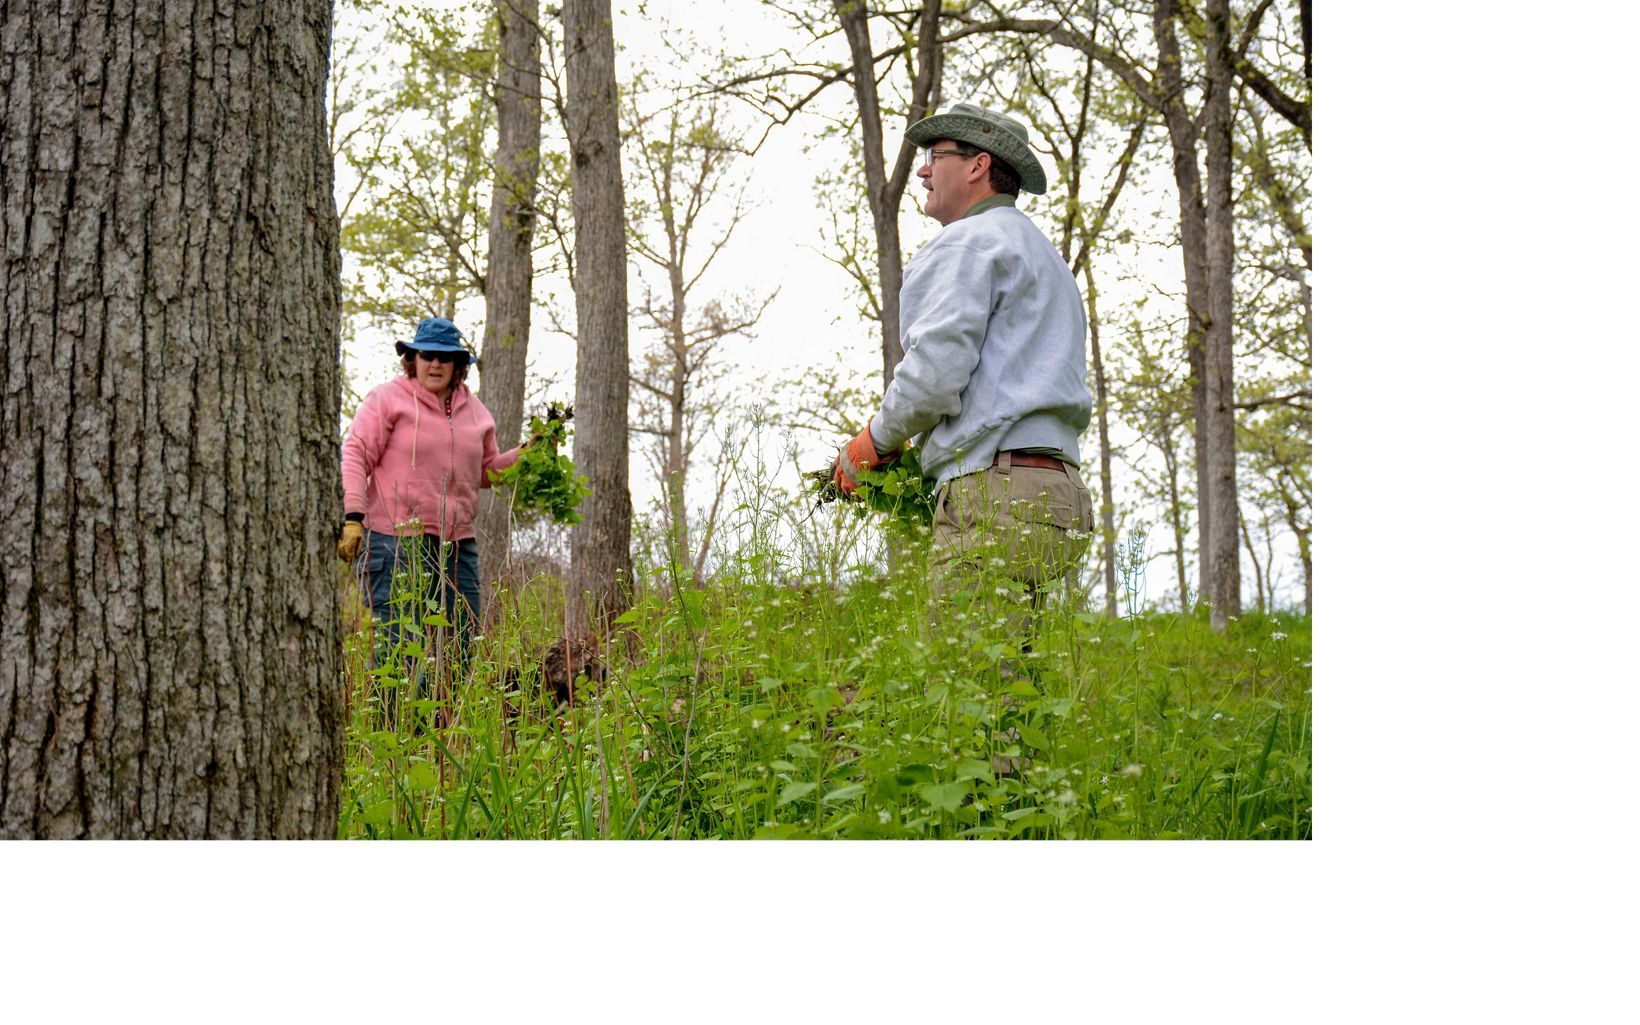 Volunteers collect invasive garlic mustard during a work day at Muehllehner Addition in Barneveld Prairie, Wisconsin.